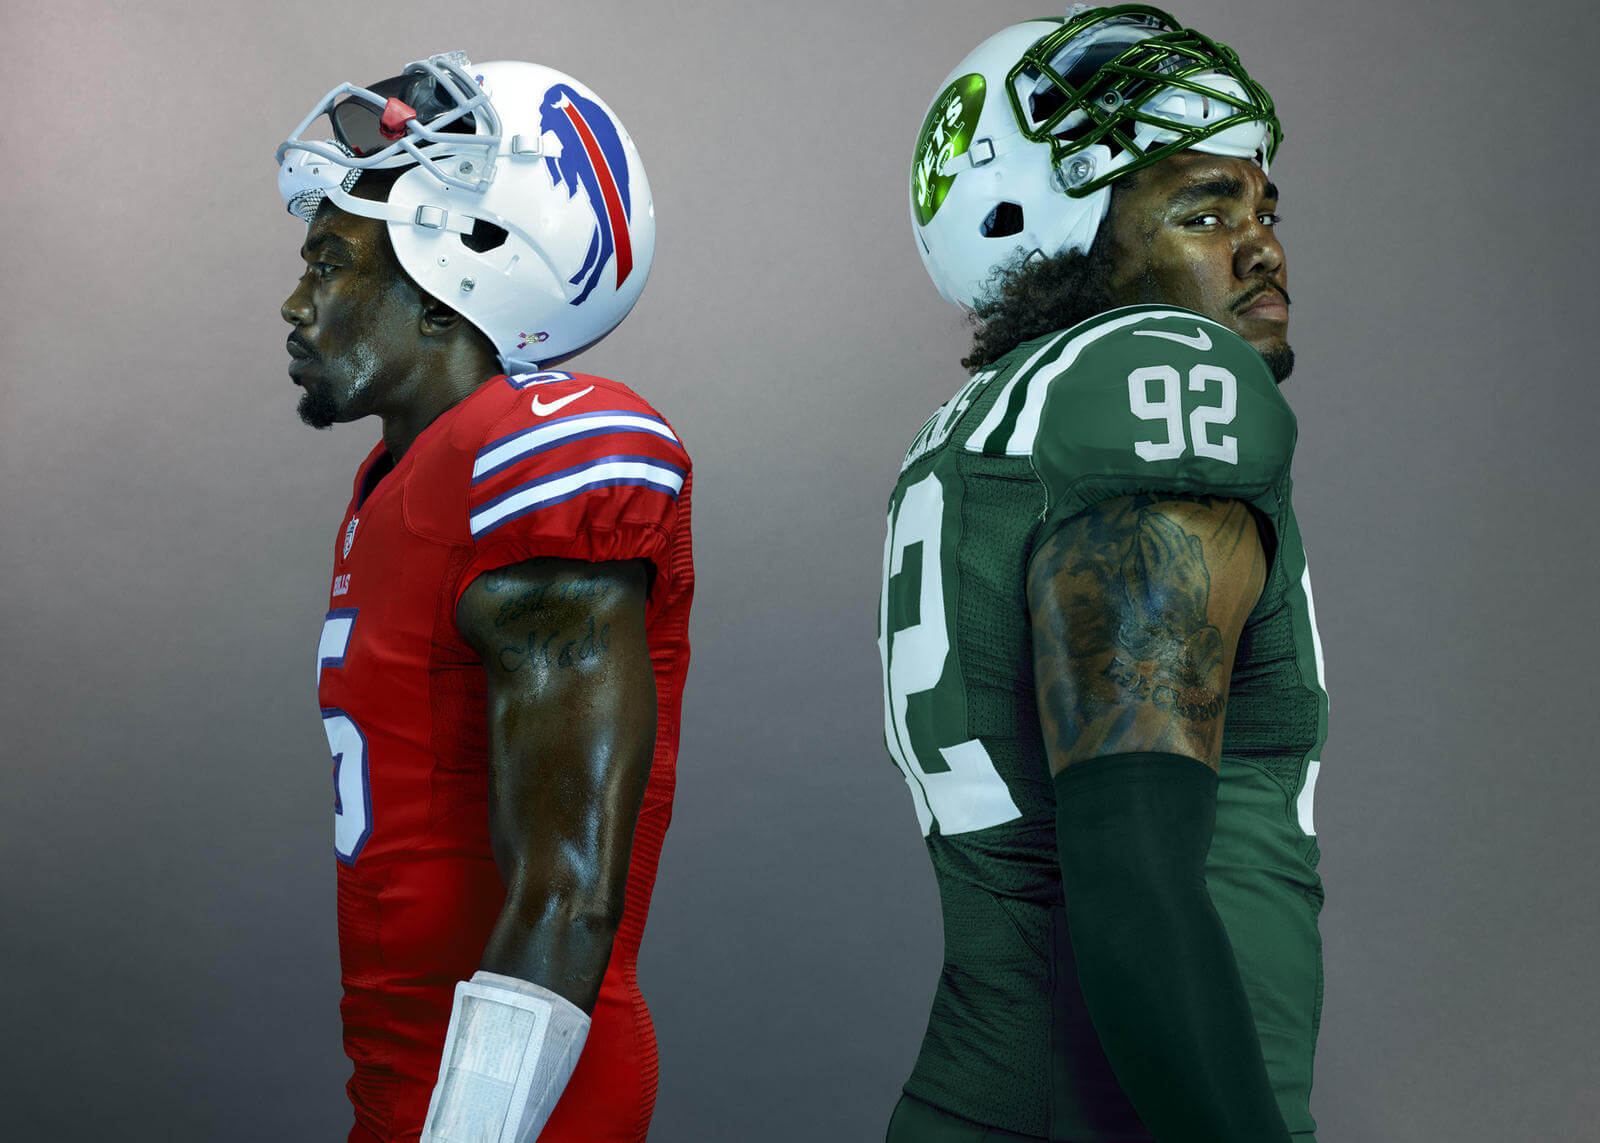 cc01d15d9 NFL Thursday Night Football Will Look Very Different Thanks To Nike Color  Rush Uniforms